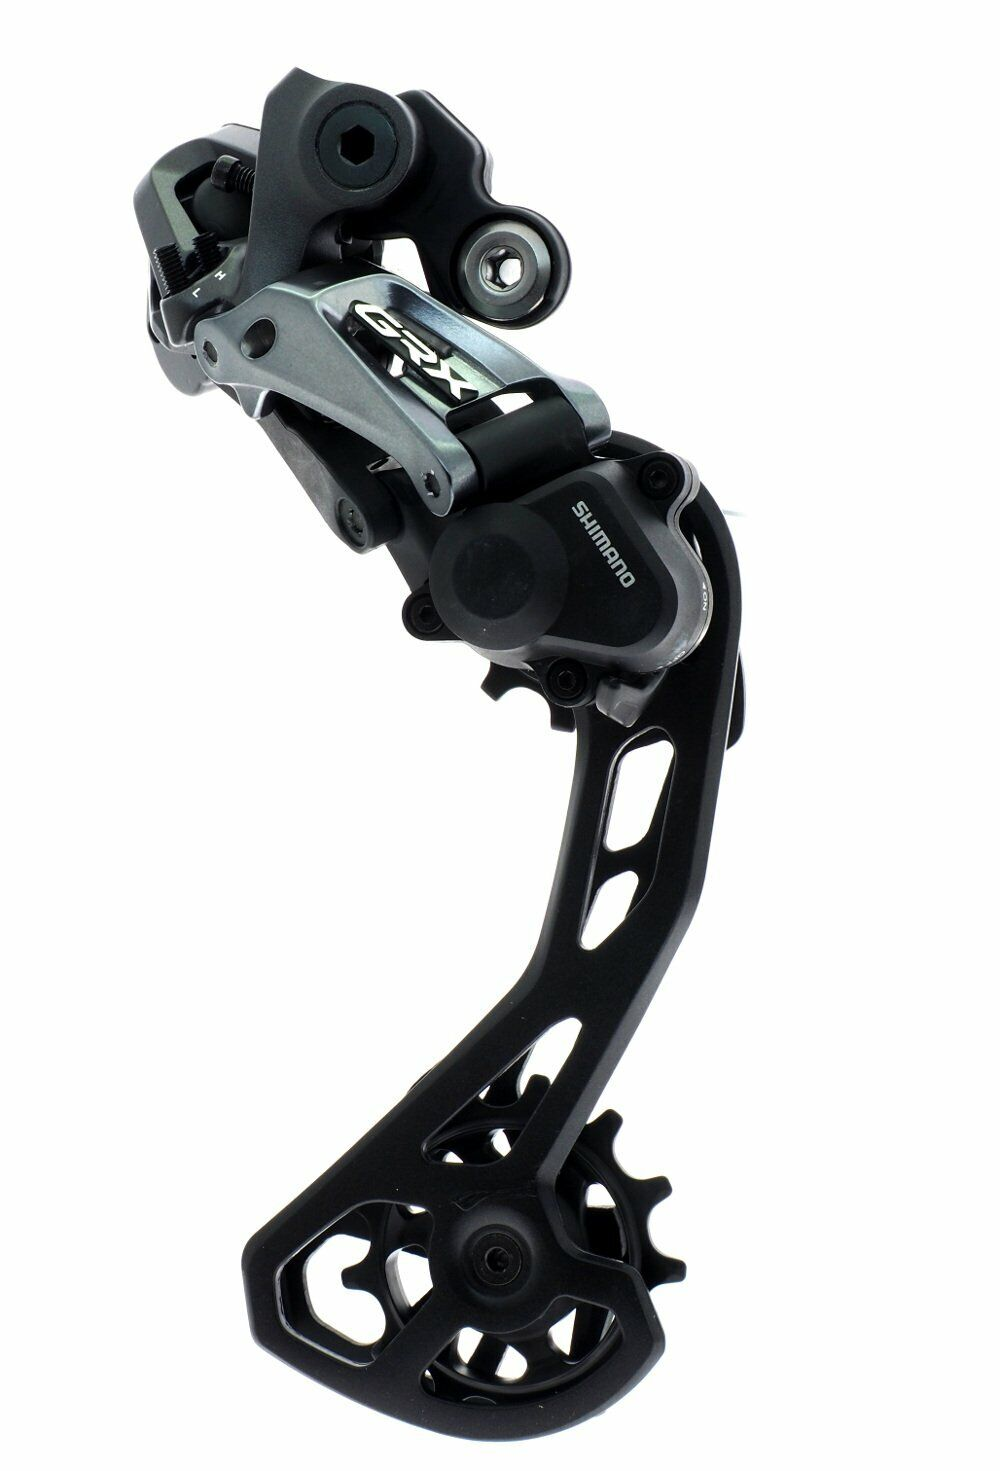 Shimano GRX Di2 RD-RX815 RD+ 11 Spd Rear  Derailleur CycleCross Gravel  free delivery and returns